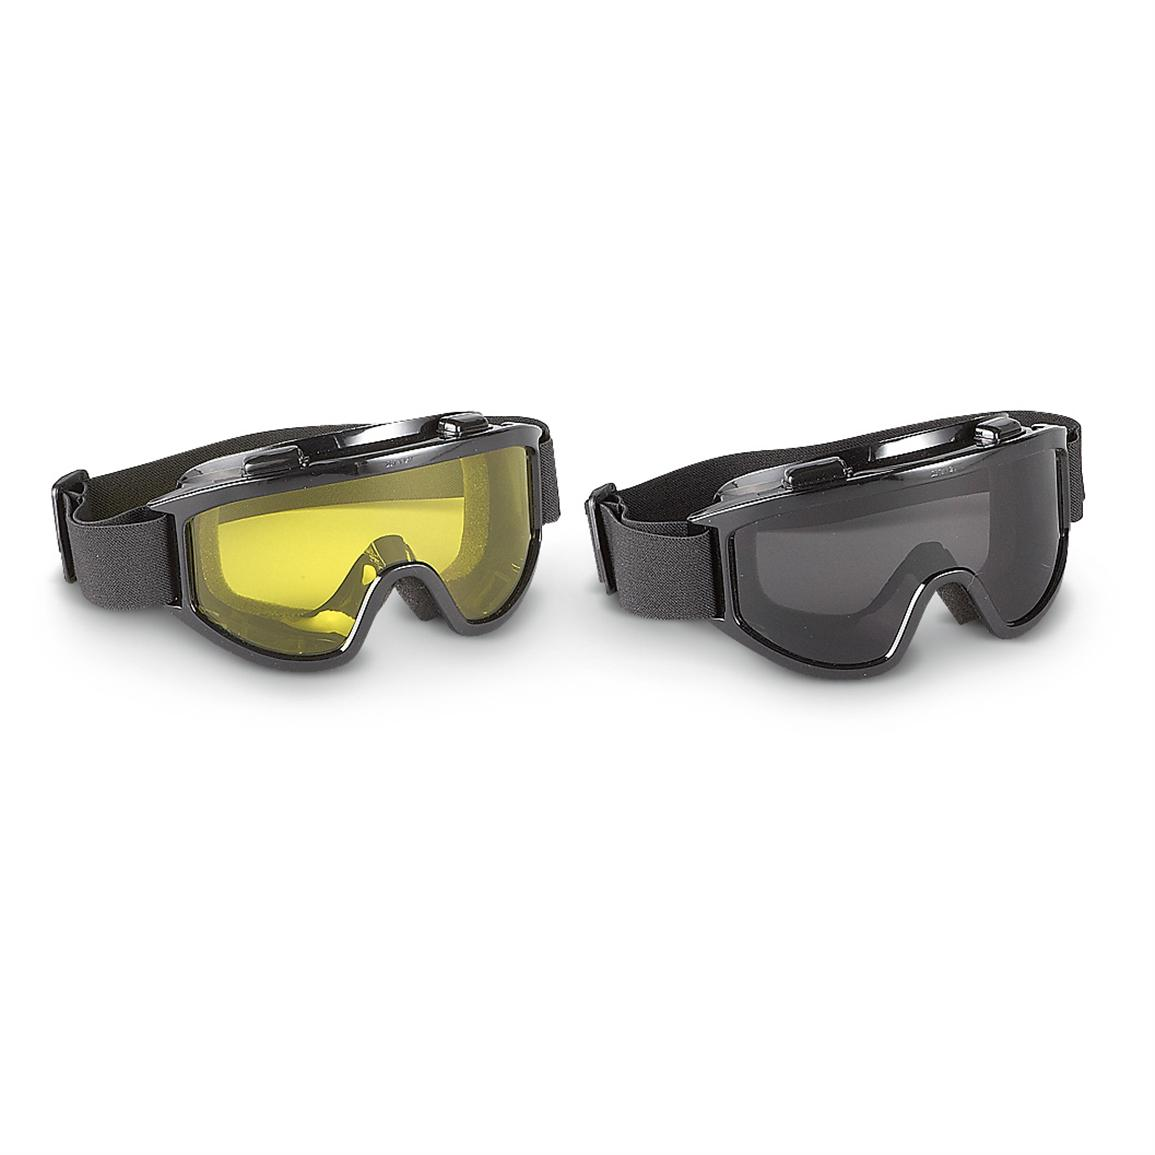 Overglass Riding Goggles, 2 Pack